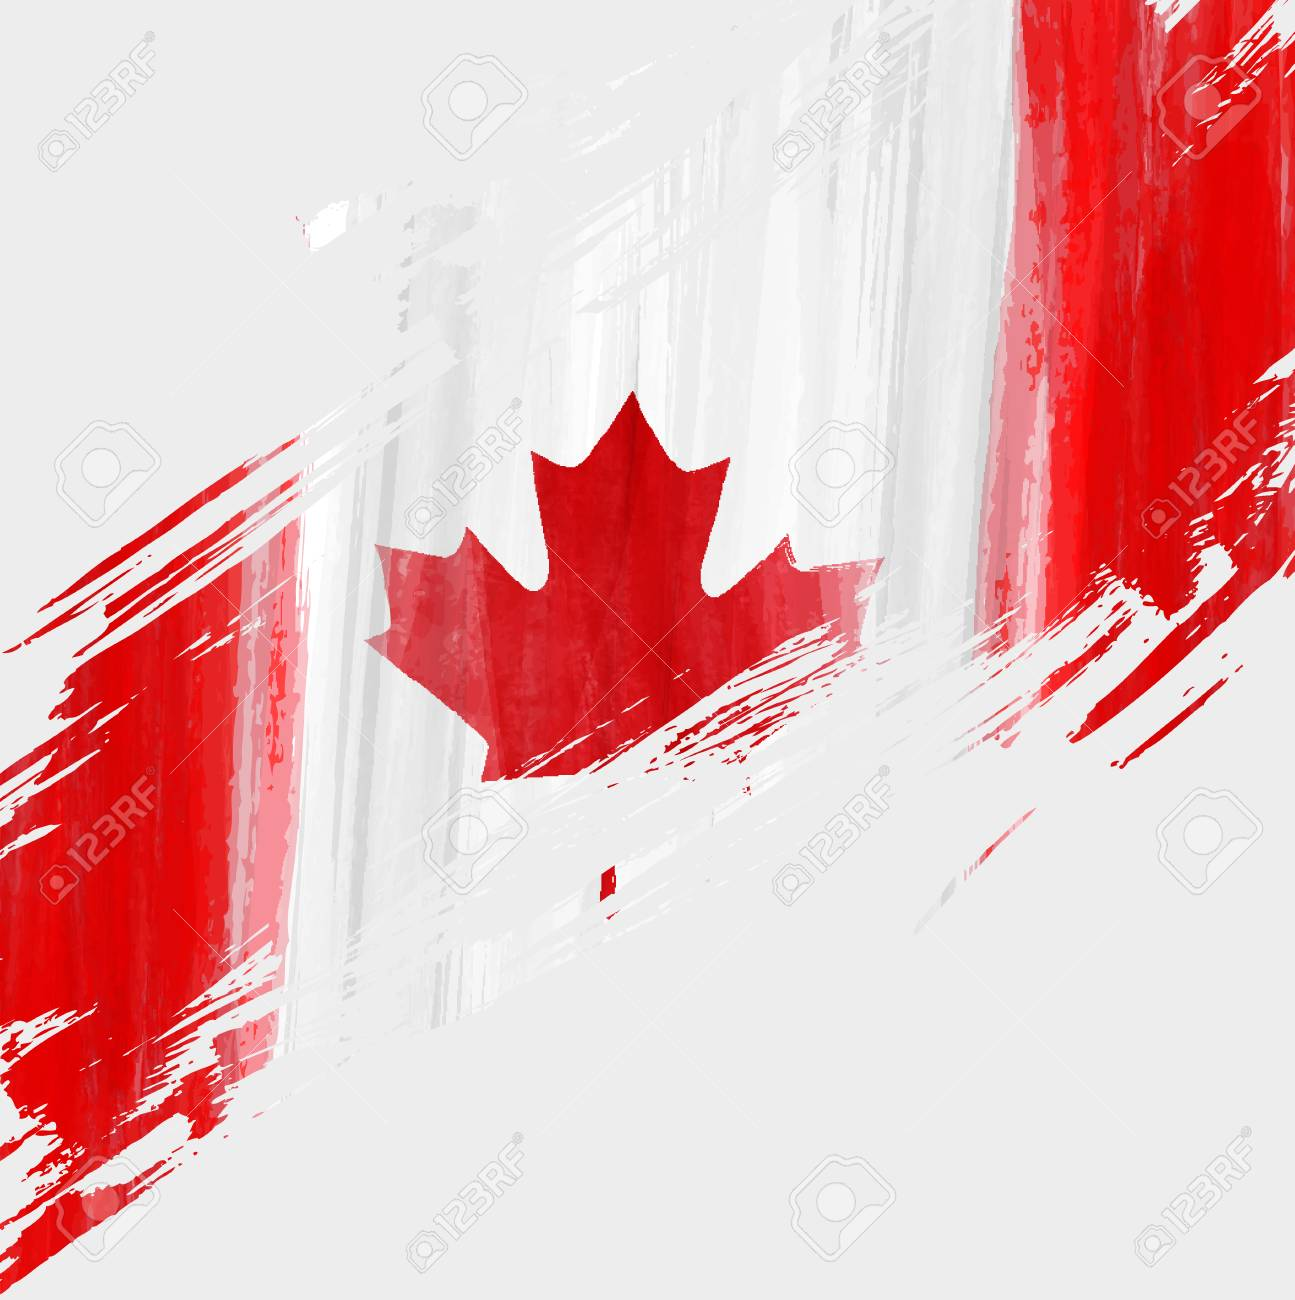 Grunge Canadian Flag Background With Watercolor Brushed Lines Template For Holidays Canada Day